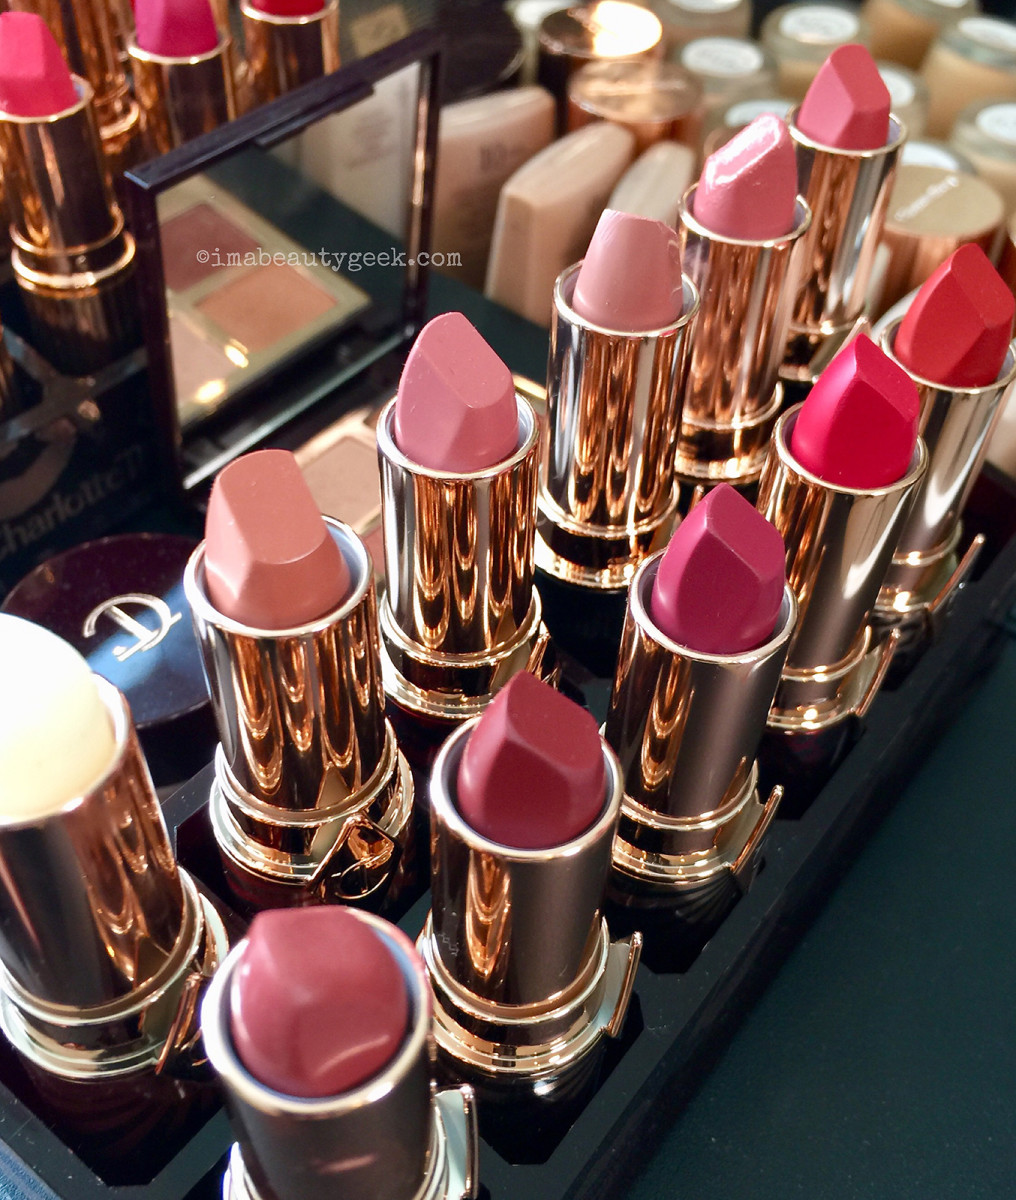 Charlotte Tilbury Hot Lips 2 lipstick collection at a recent preview